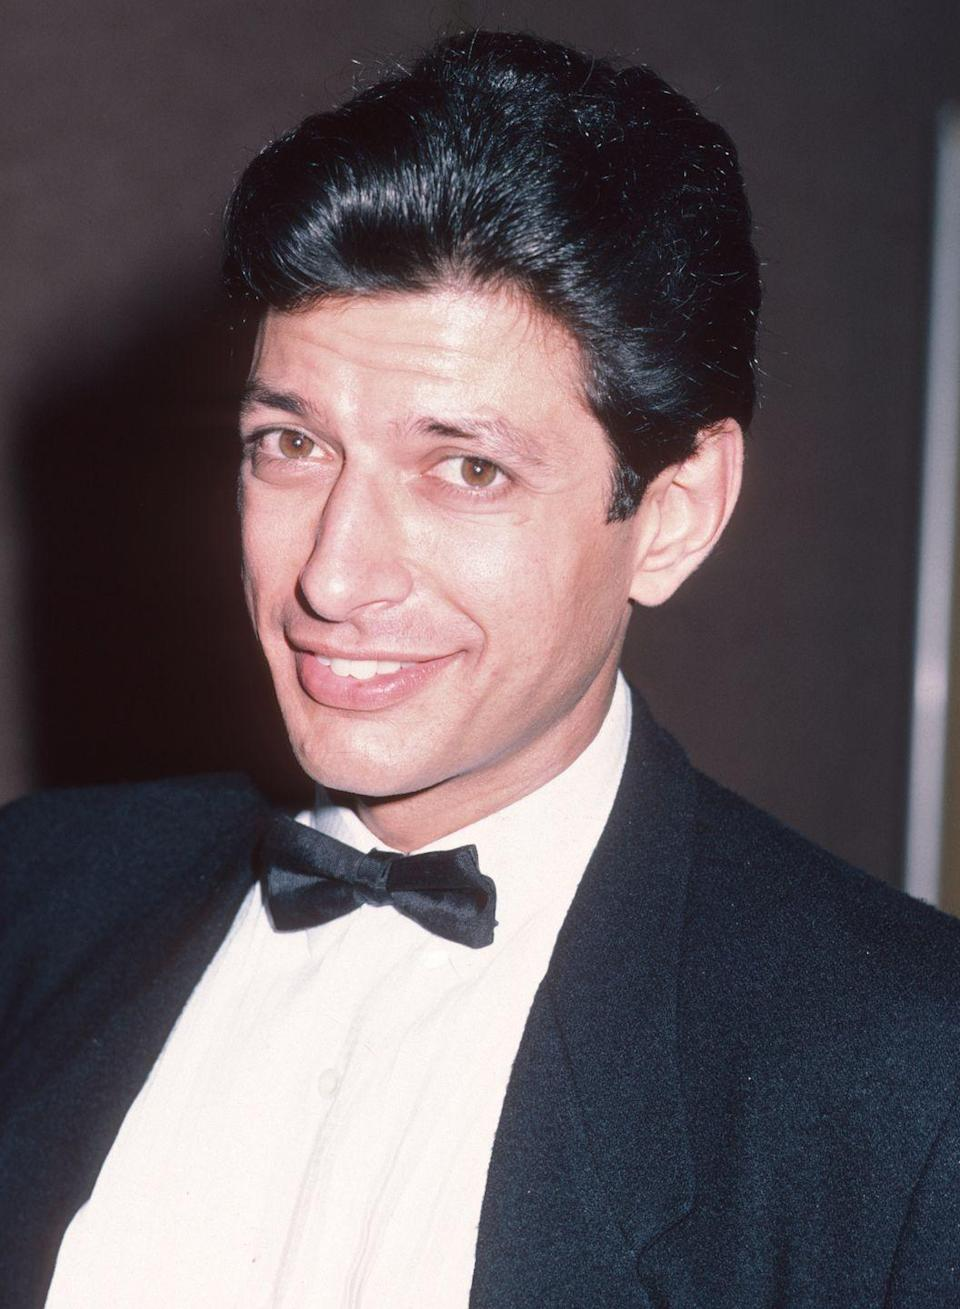 <p>Jeff Goldblum looked every bit a movie star back in the day when the <em>Jurassic Park </em>star's thick hair could rival that of Elvis Presley. </p>